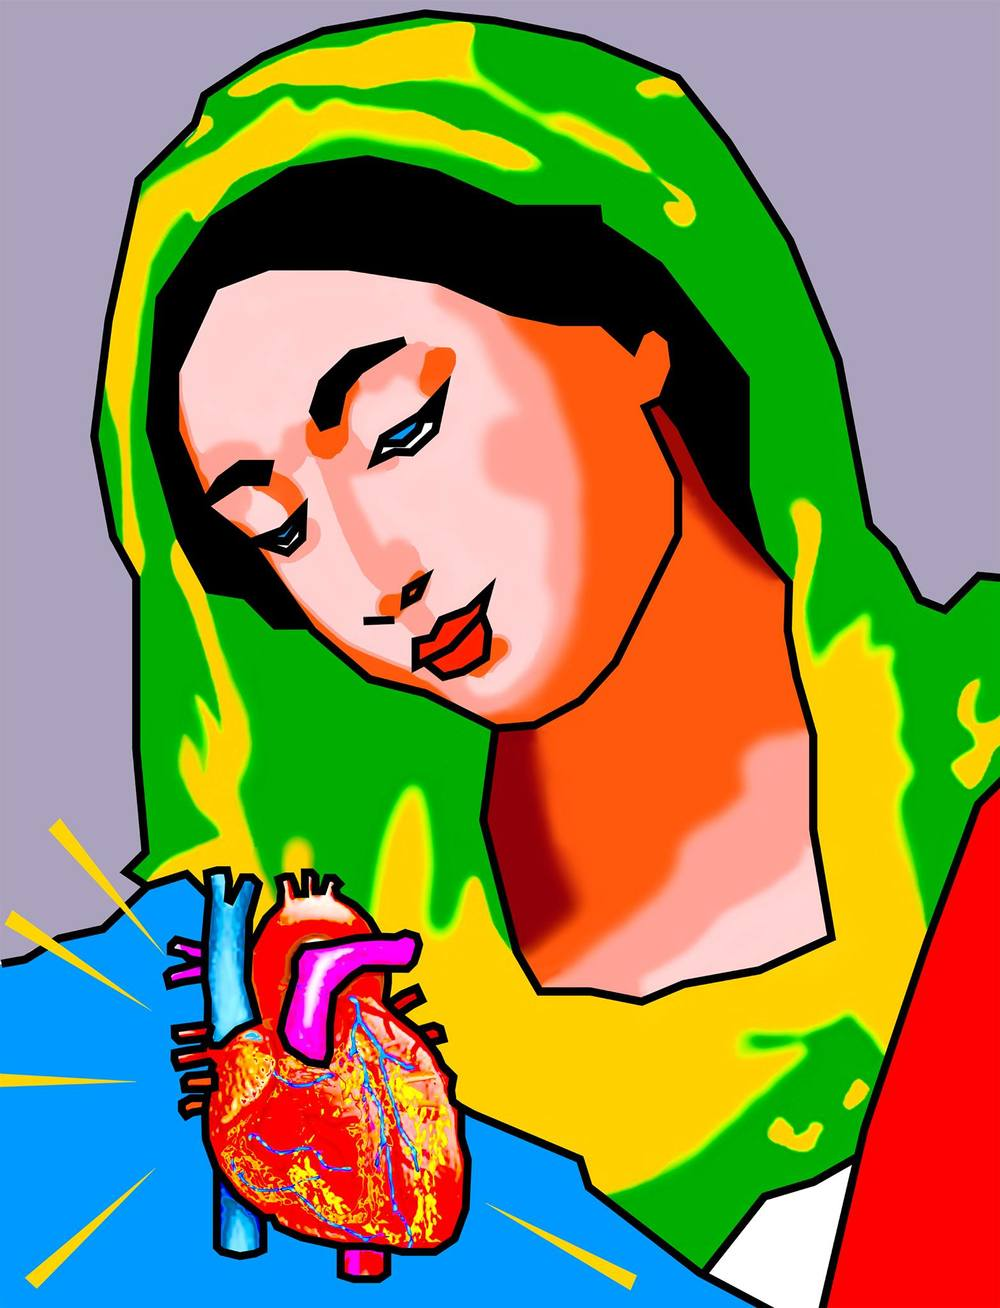 MADONNA AND HEART, Digital Canvas, British Heart Foundation Appeal, 2010/11, Duggie Fields